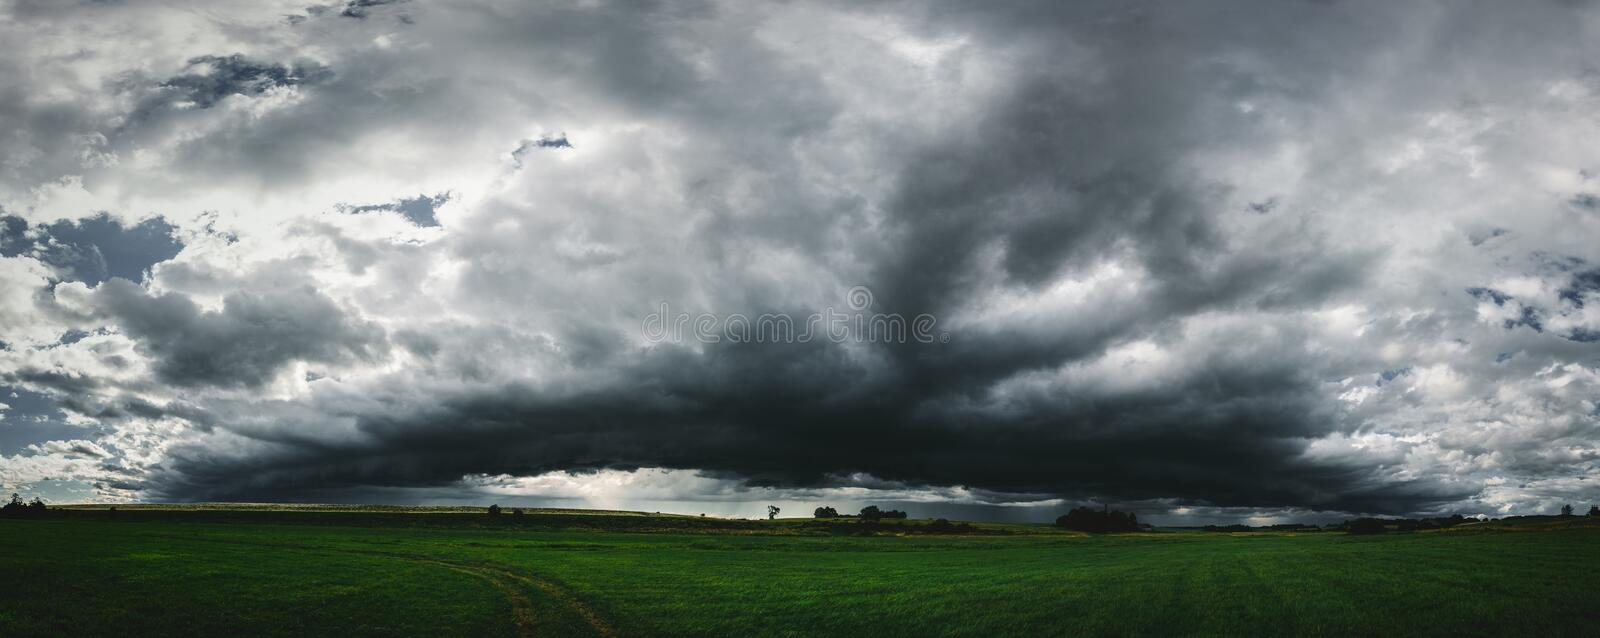 Dark storm clouds panorama above the green grass field.  stock photo